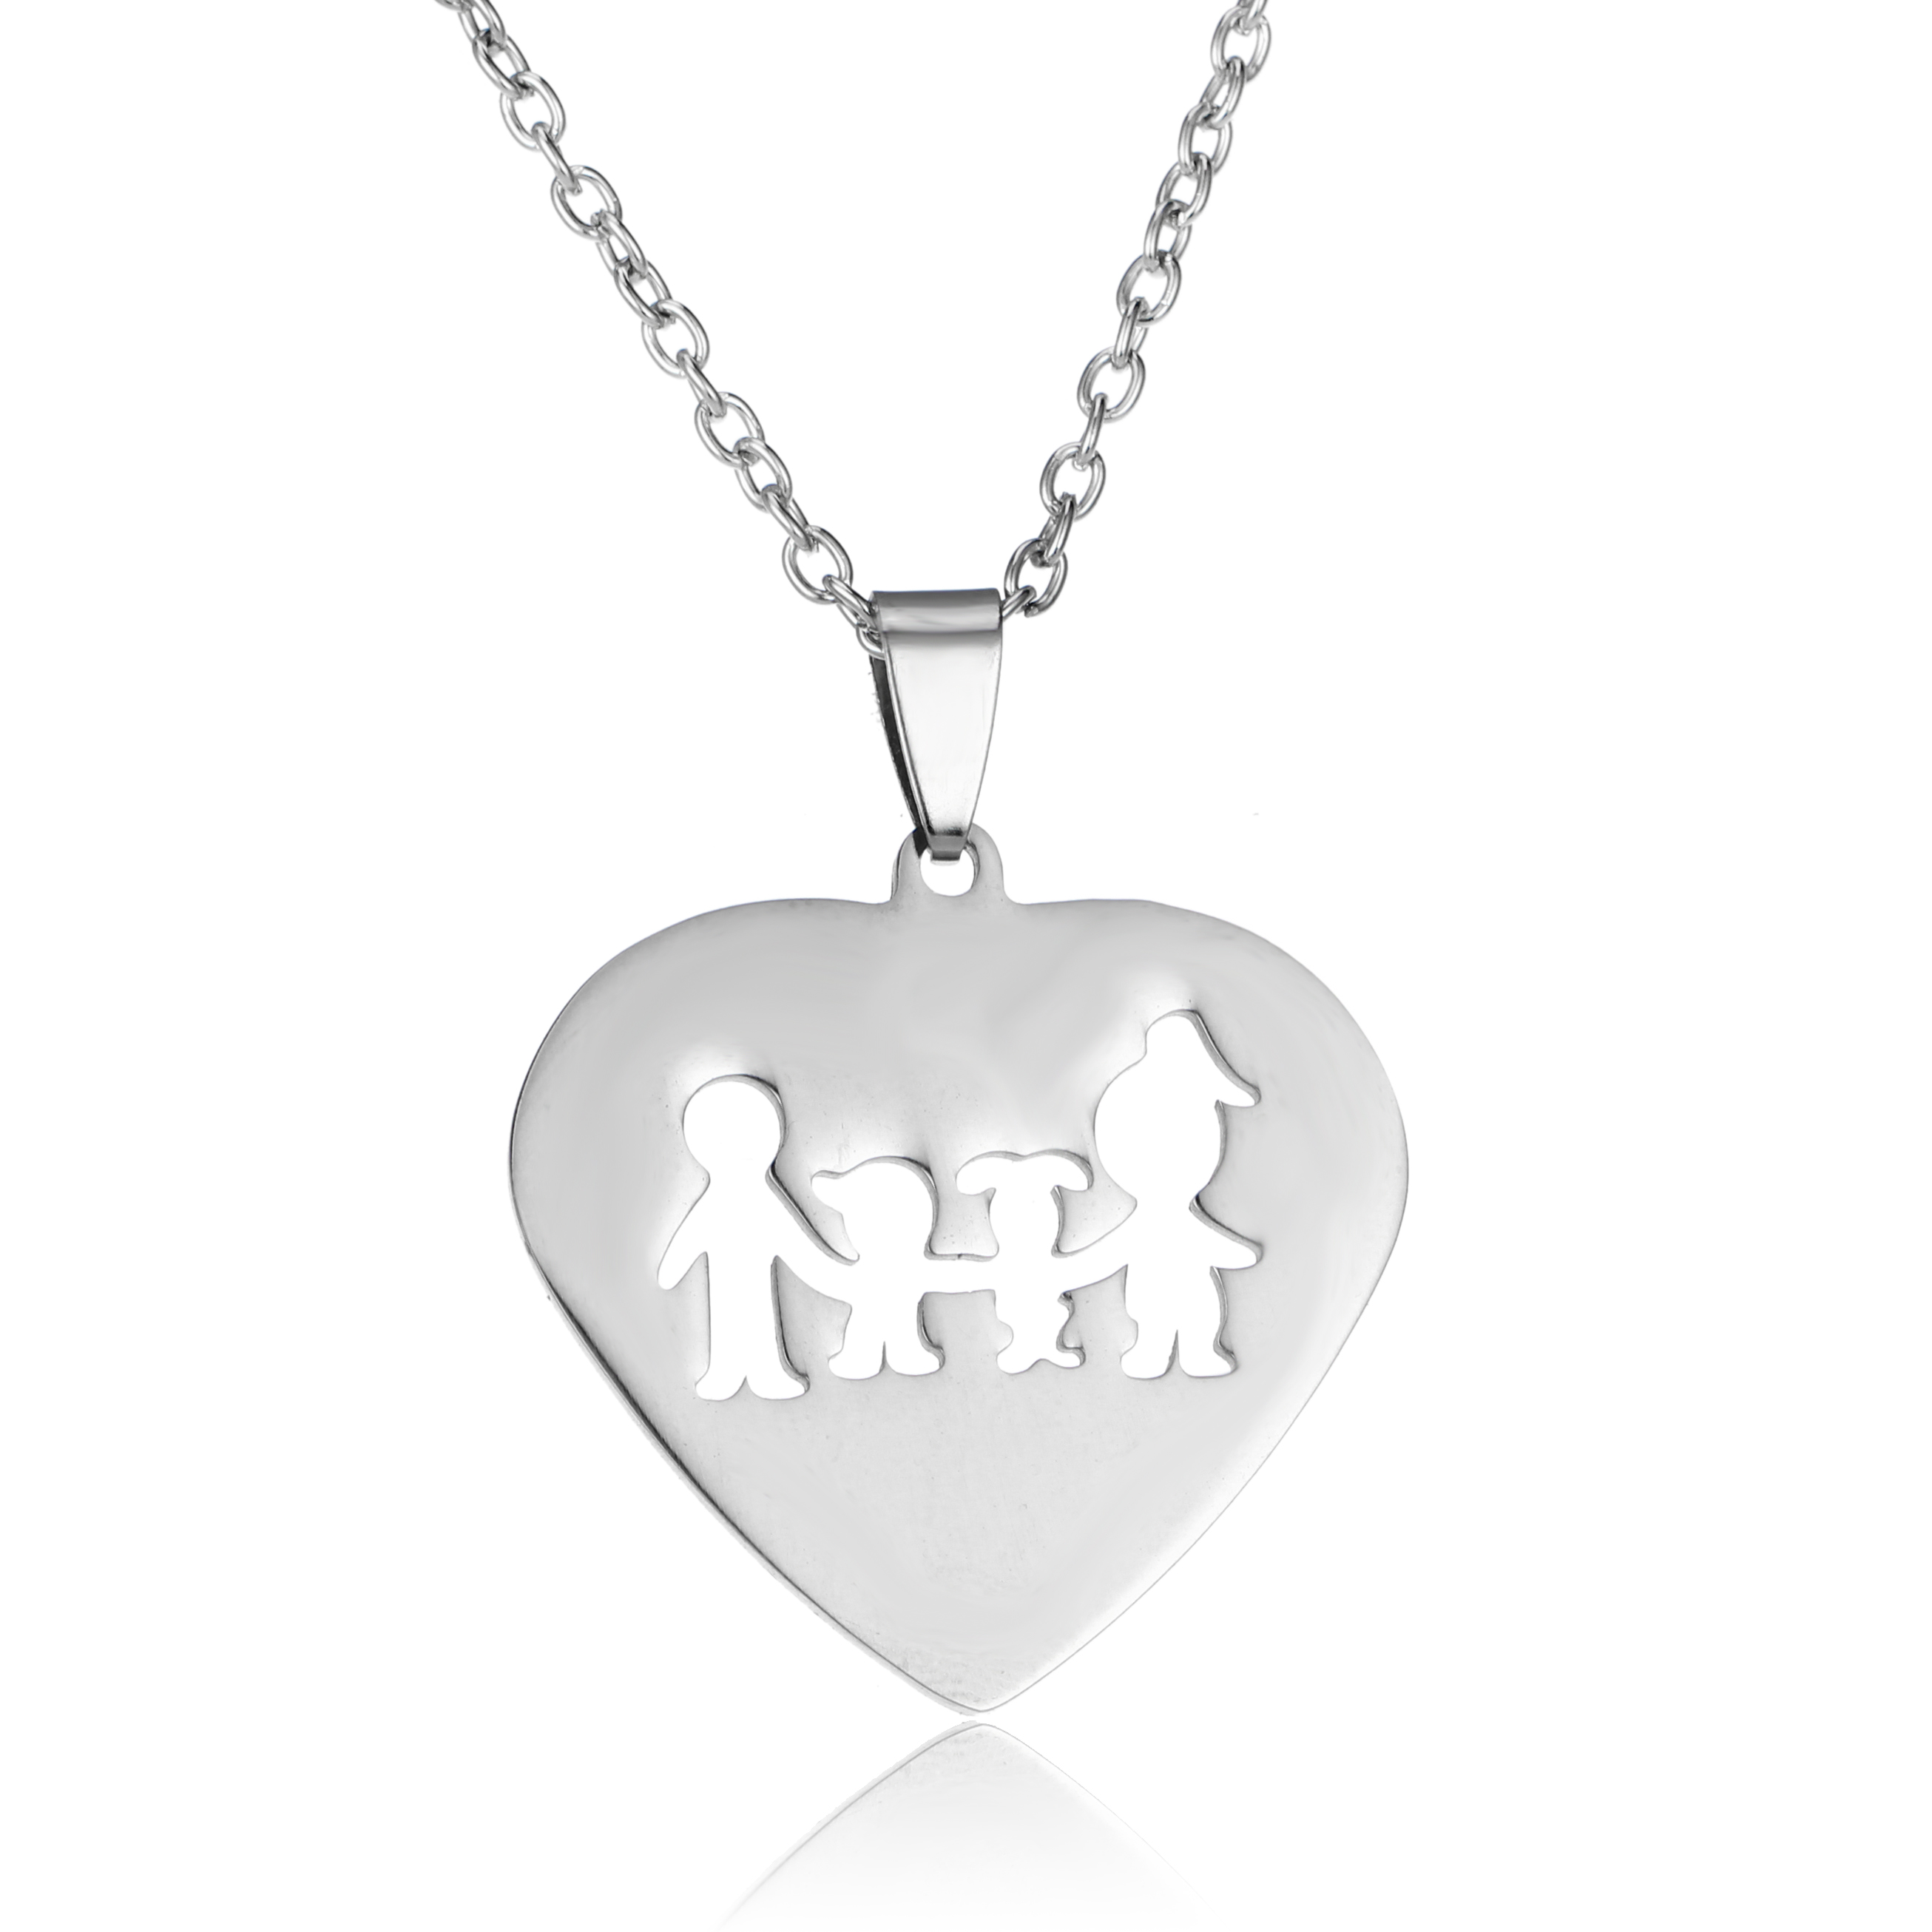 Silver Necklace For Mom Dad Family Love Heart Pendant Women Men Jewelry Gifts